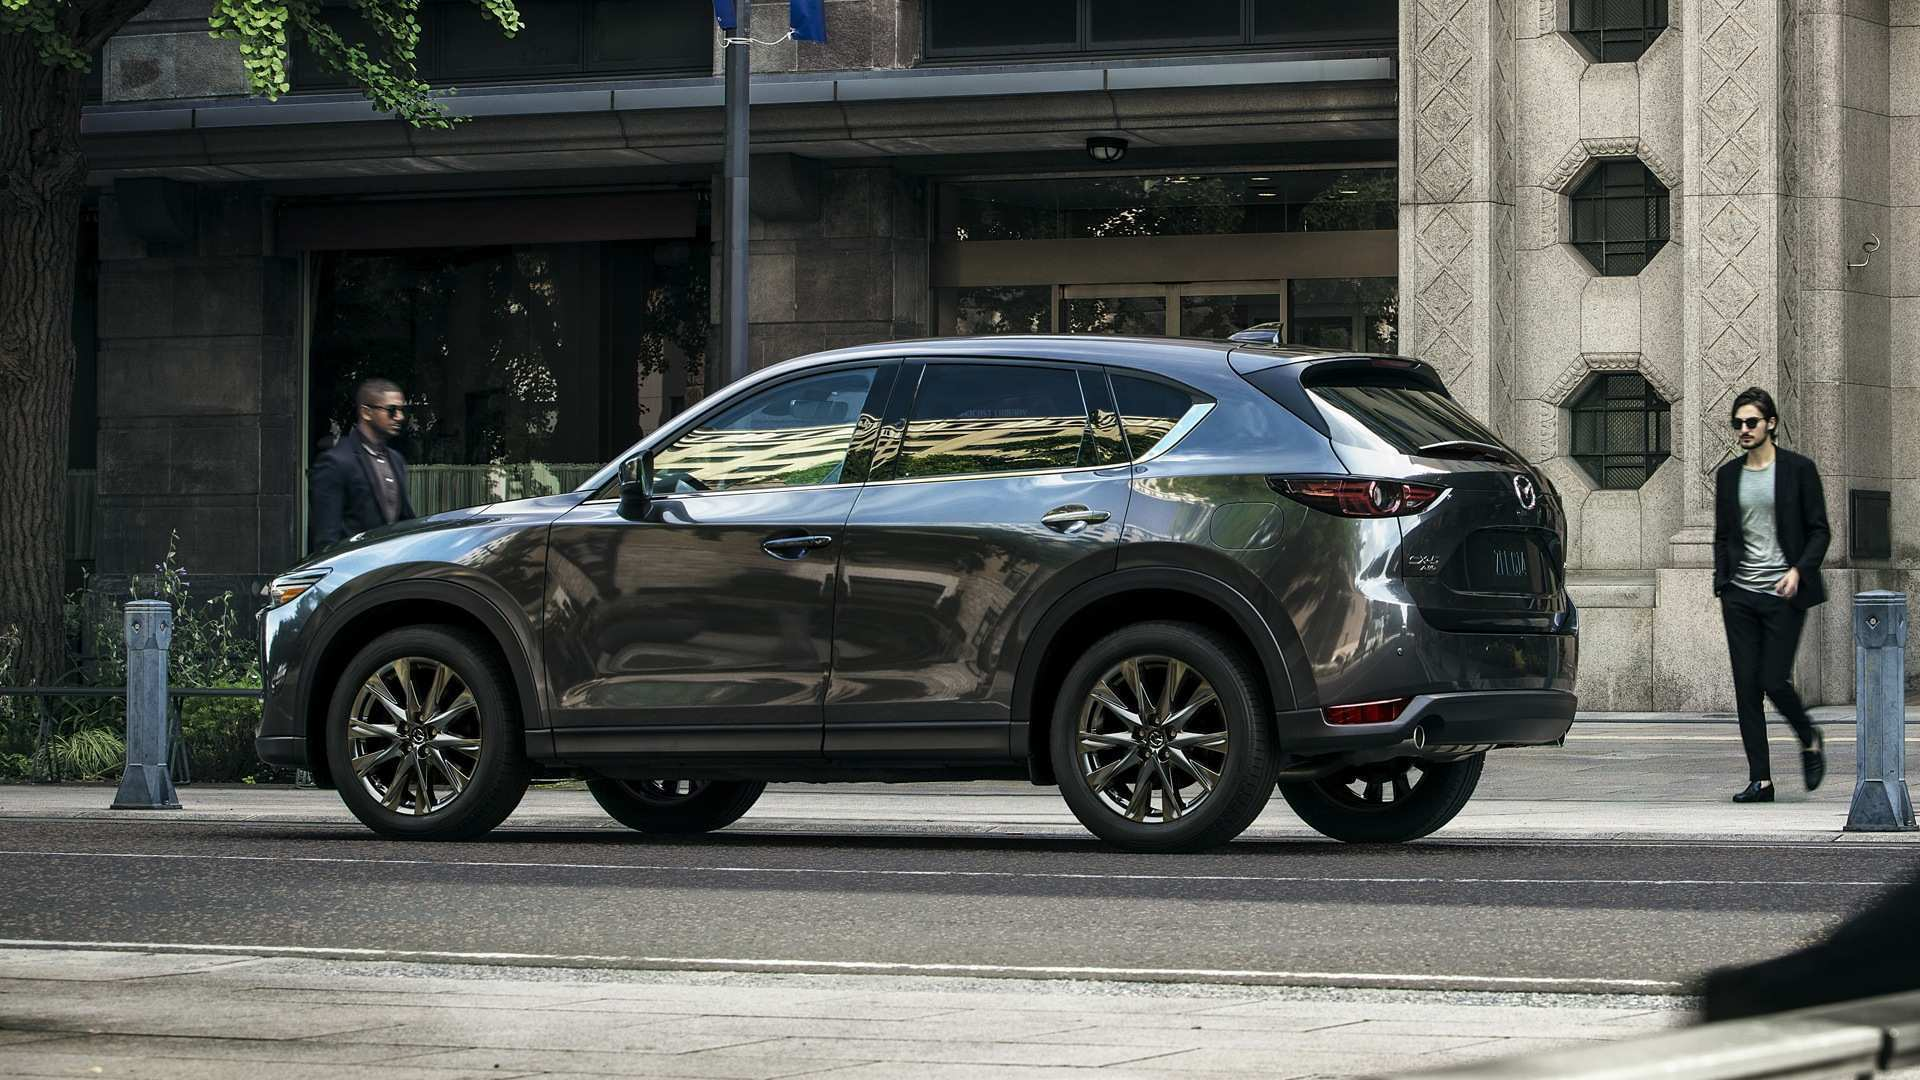 51 The Best 2020 Mazda Cx 5 Redesign And Concept